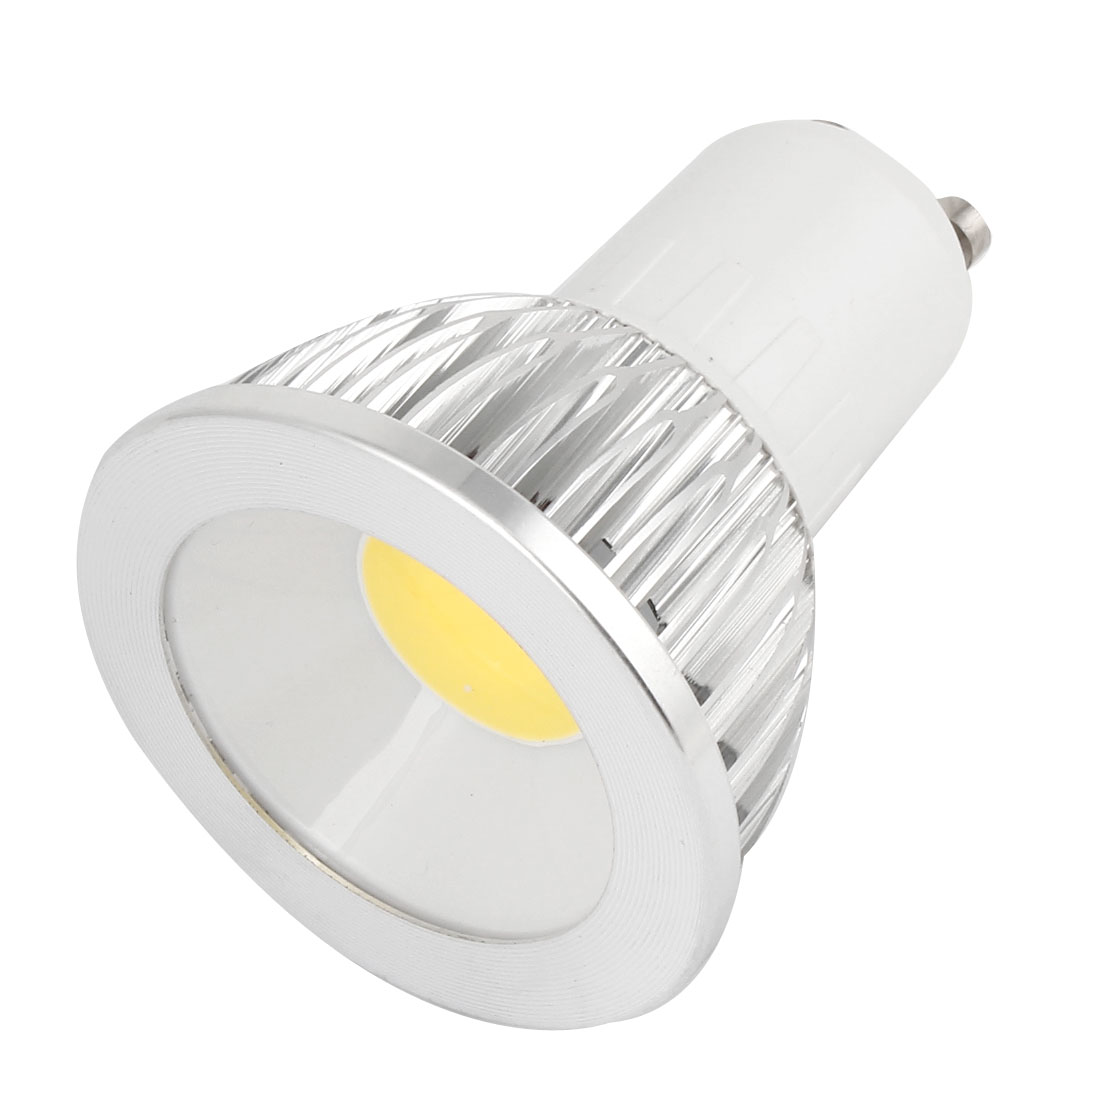 AC 85-265V 6W GU10 Dimmable White Light COB LED Downlight Spotlight